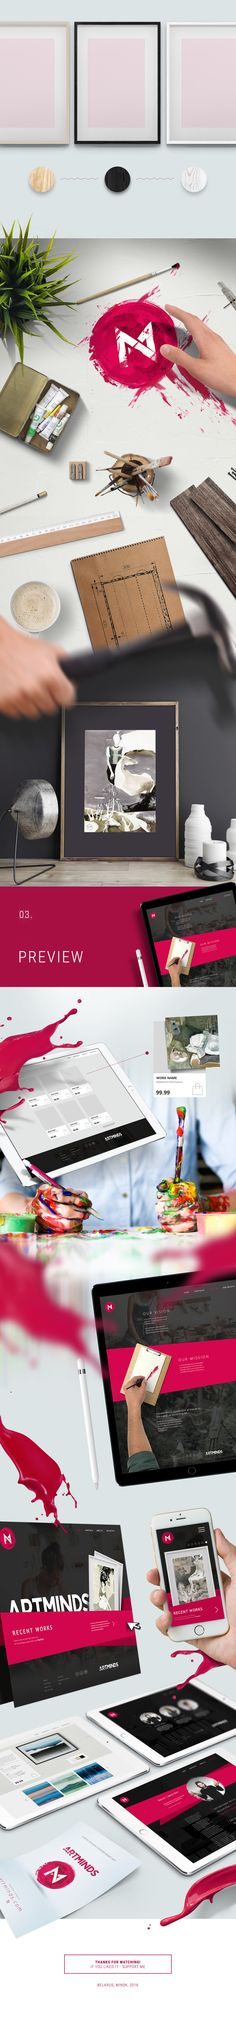 Showcase and discover creative work on the world's leading online platform for creative industries. Web Design, Graphic Design, Brand Style Guide, Creative Industries, Fashion Branding, Identity Design, Style Guides, Presentation, Behance